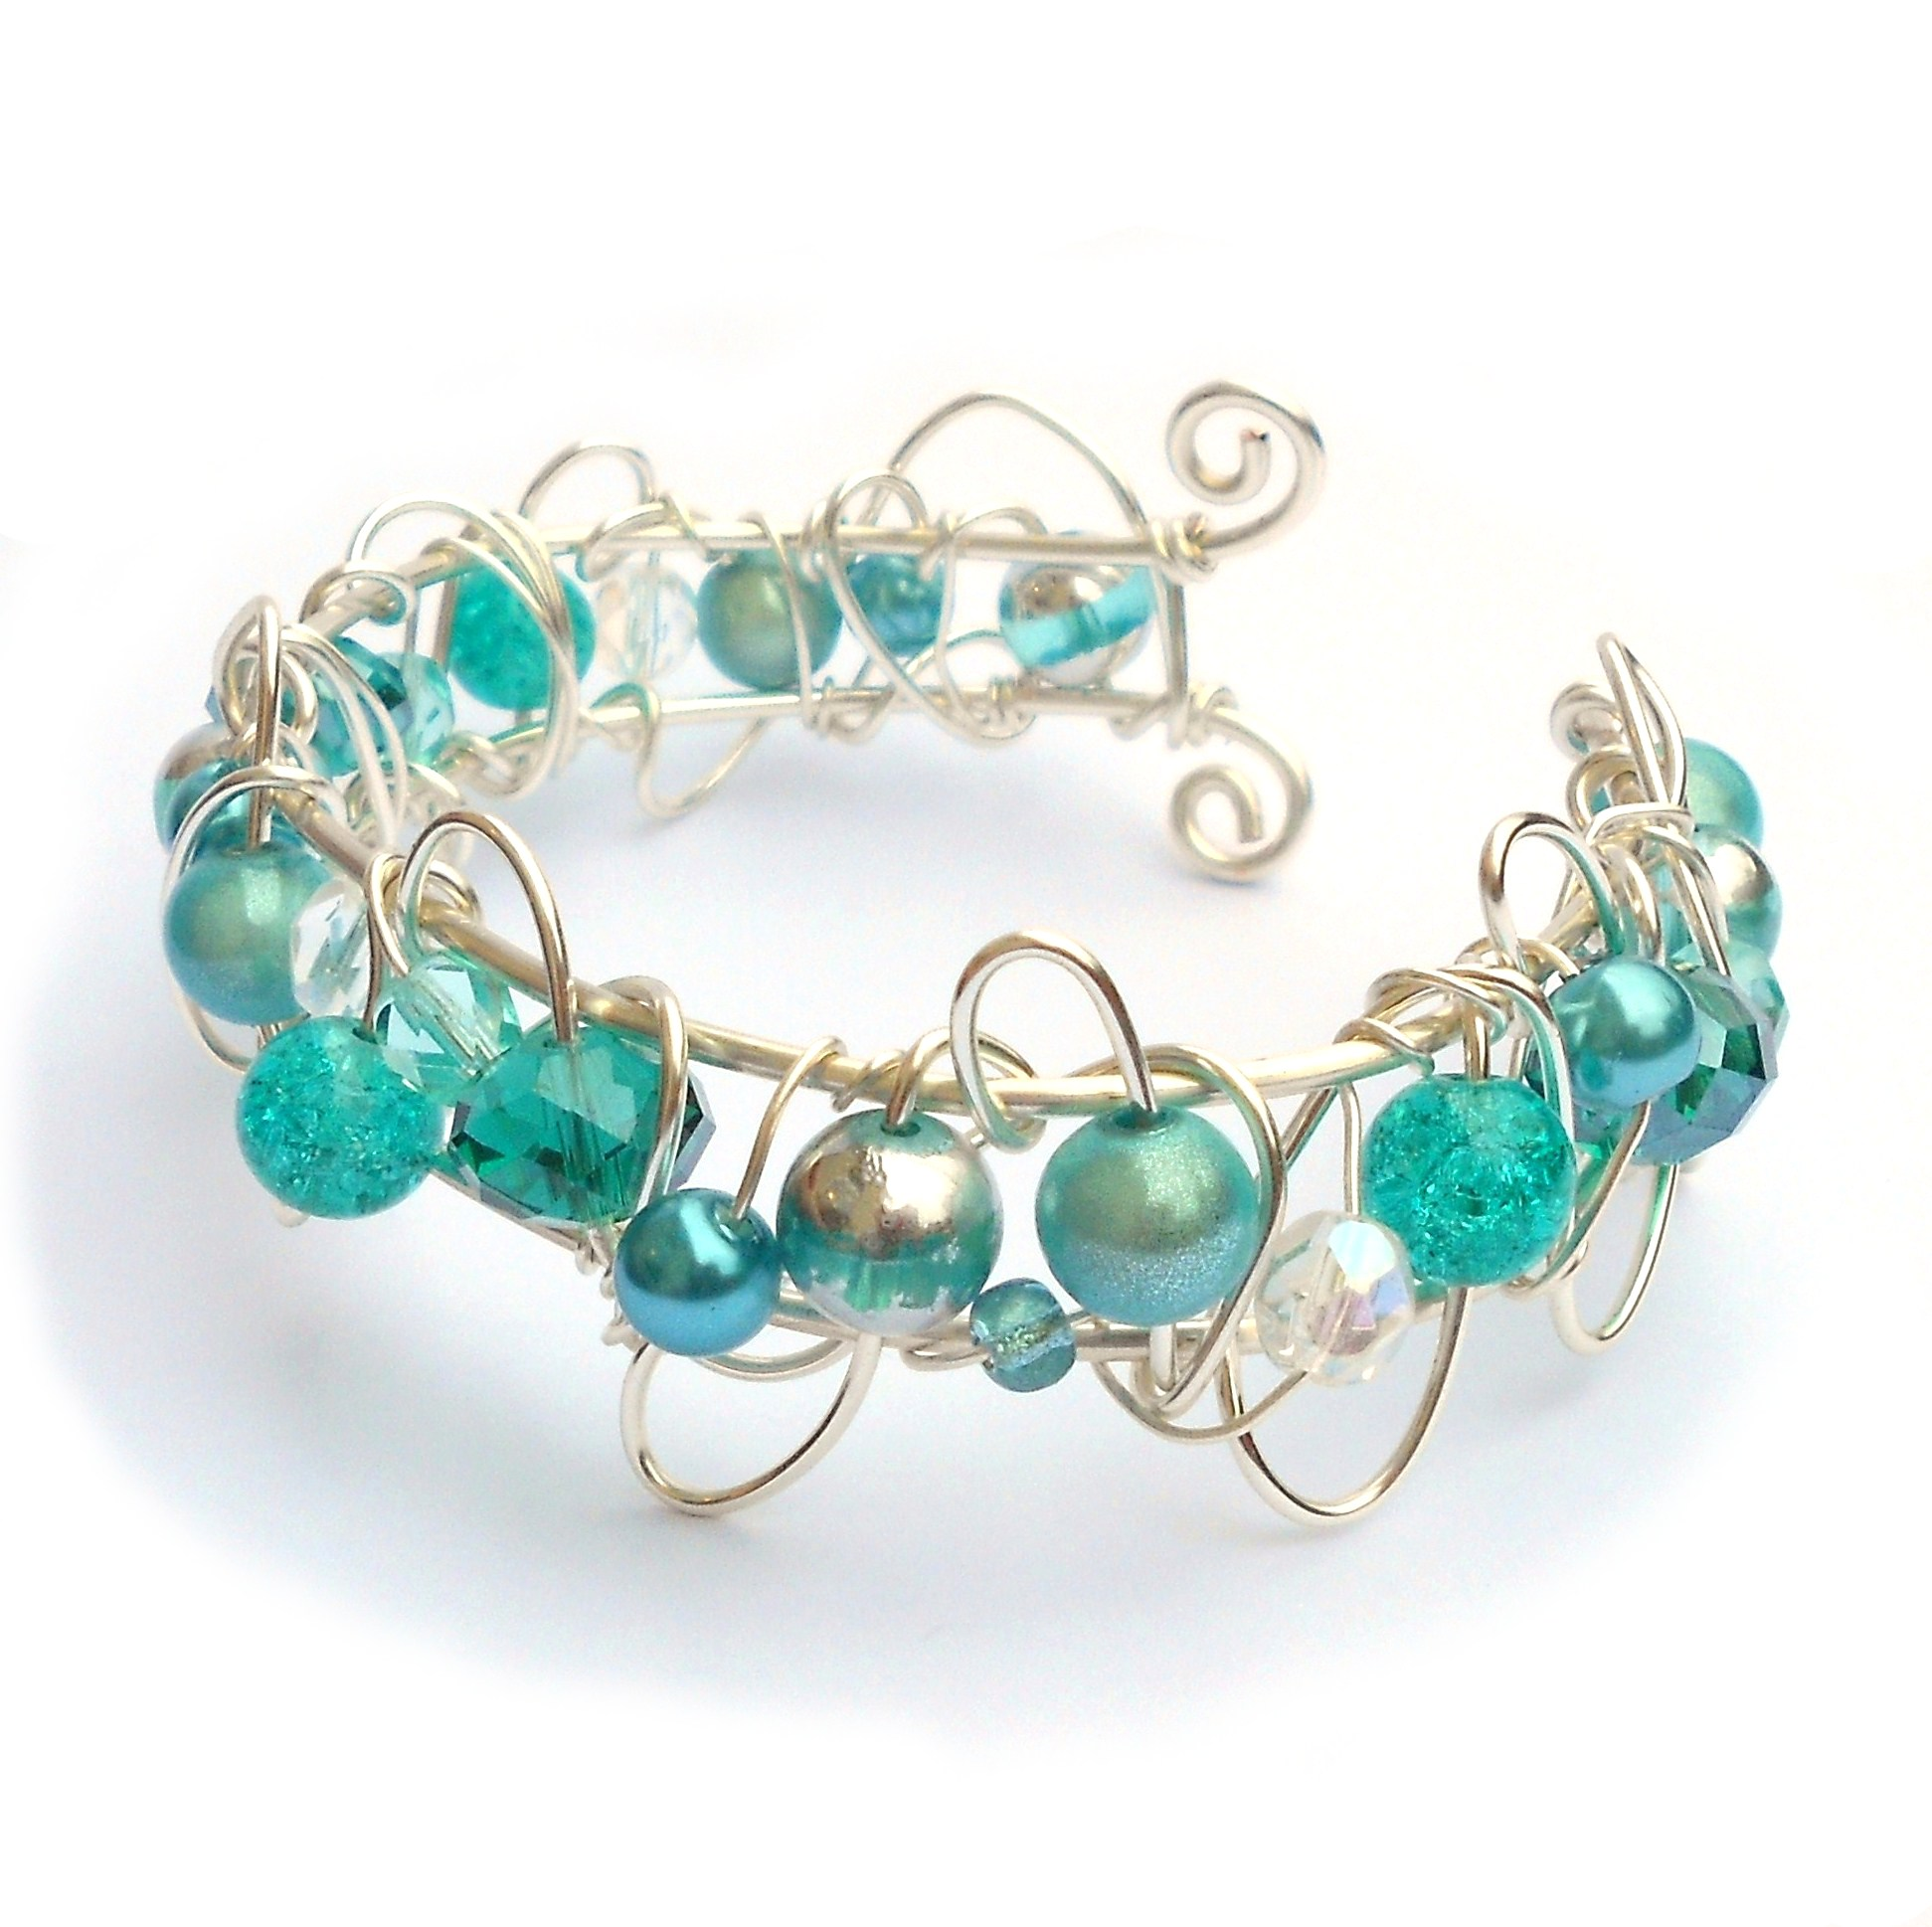 Shades of Turquoise Wire Cuff Bracelet